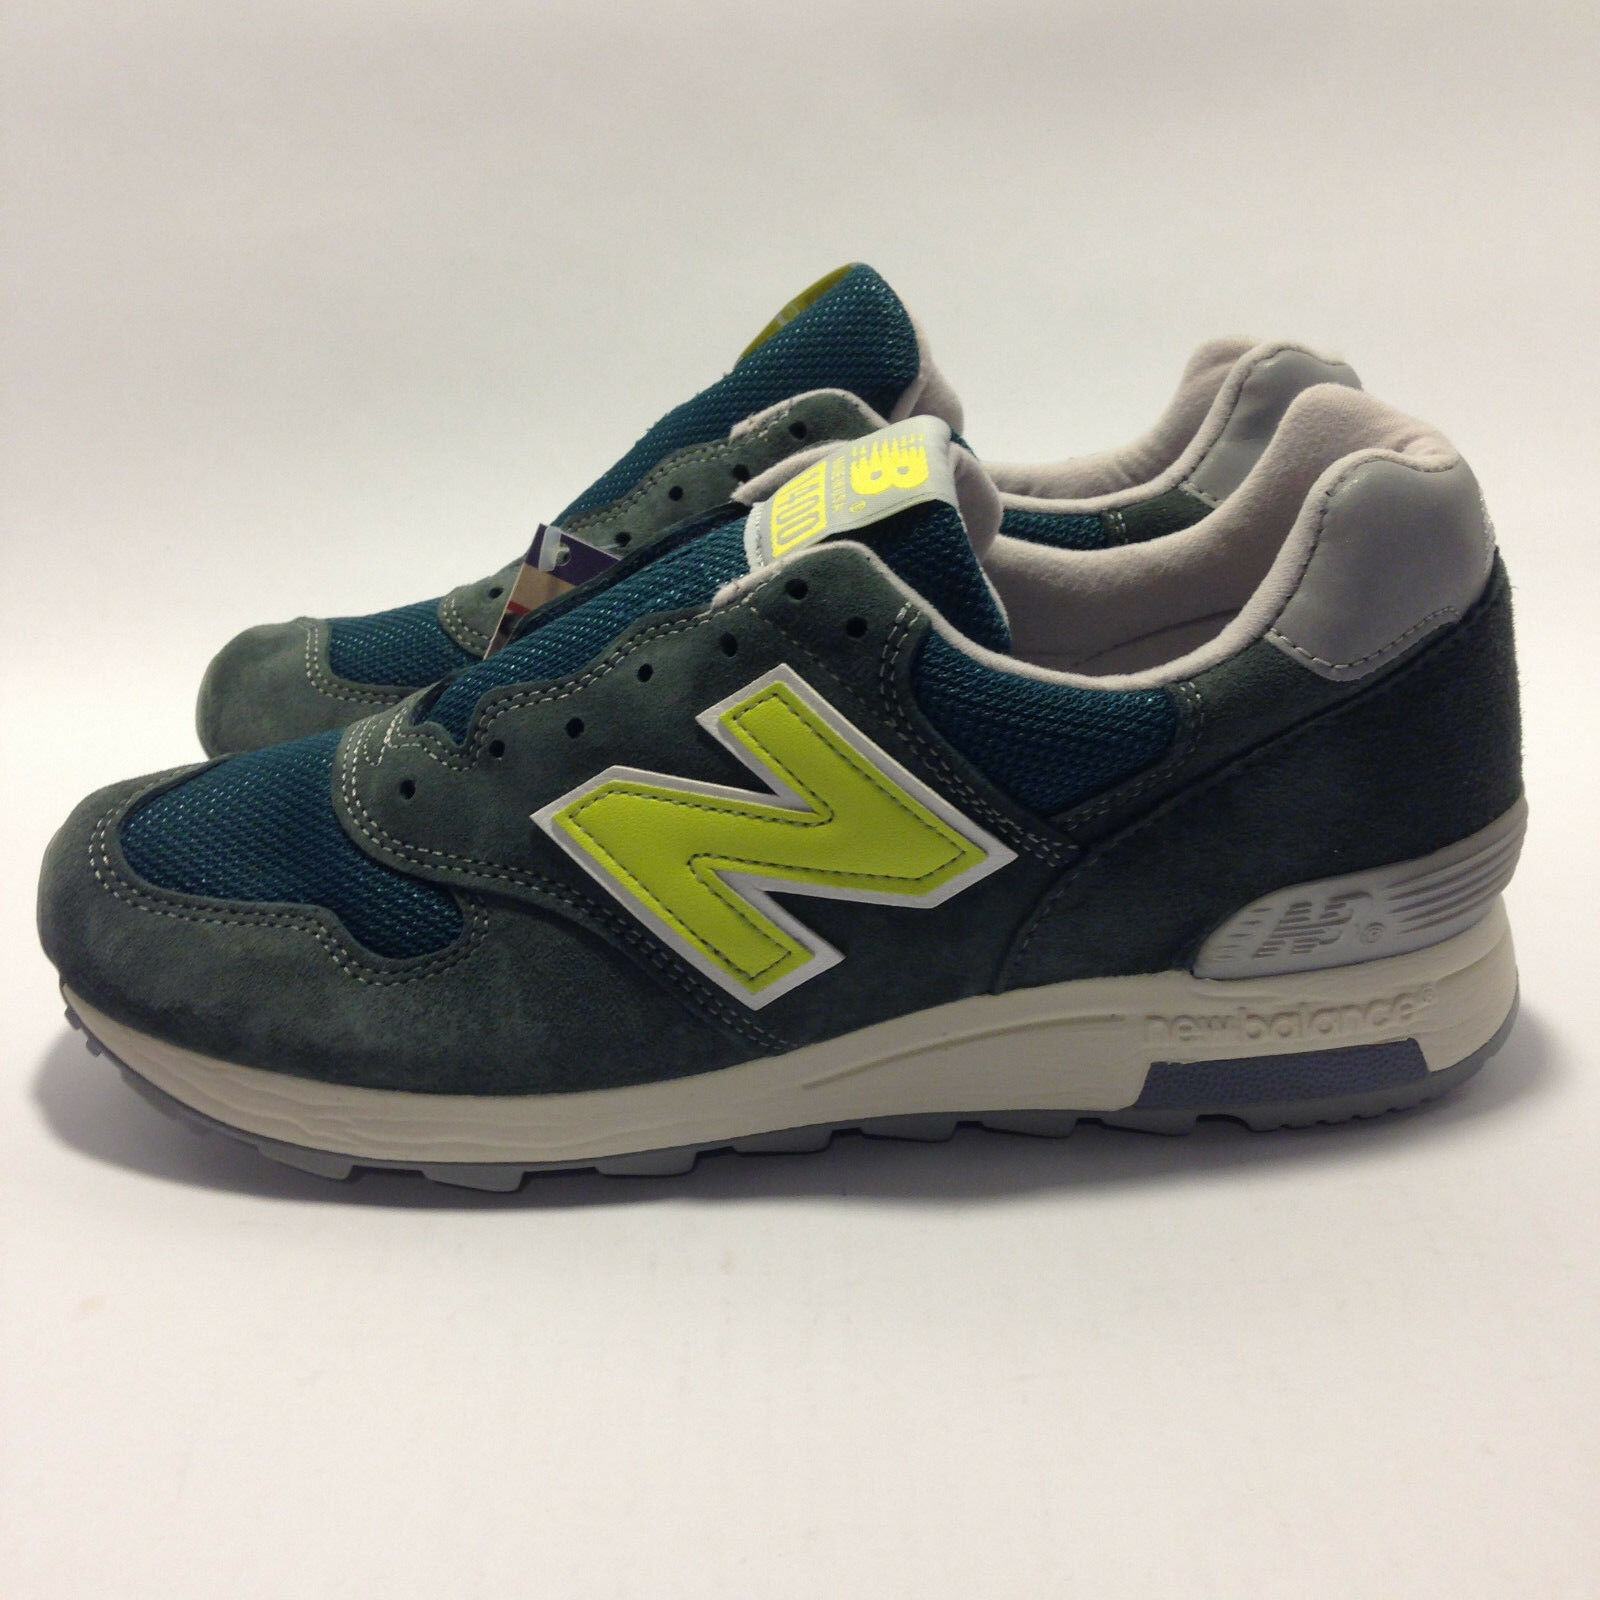 New Balance for J.Crew 1400 [M1400JS2] Very RARE  Men's Lifestyle Sneakers  7.5